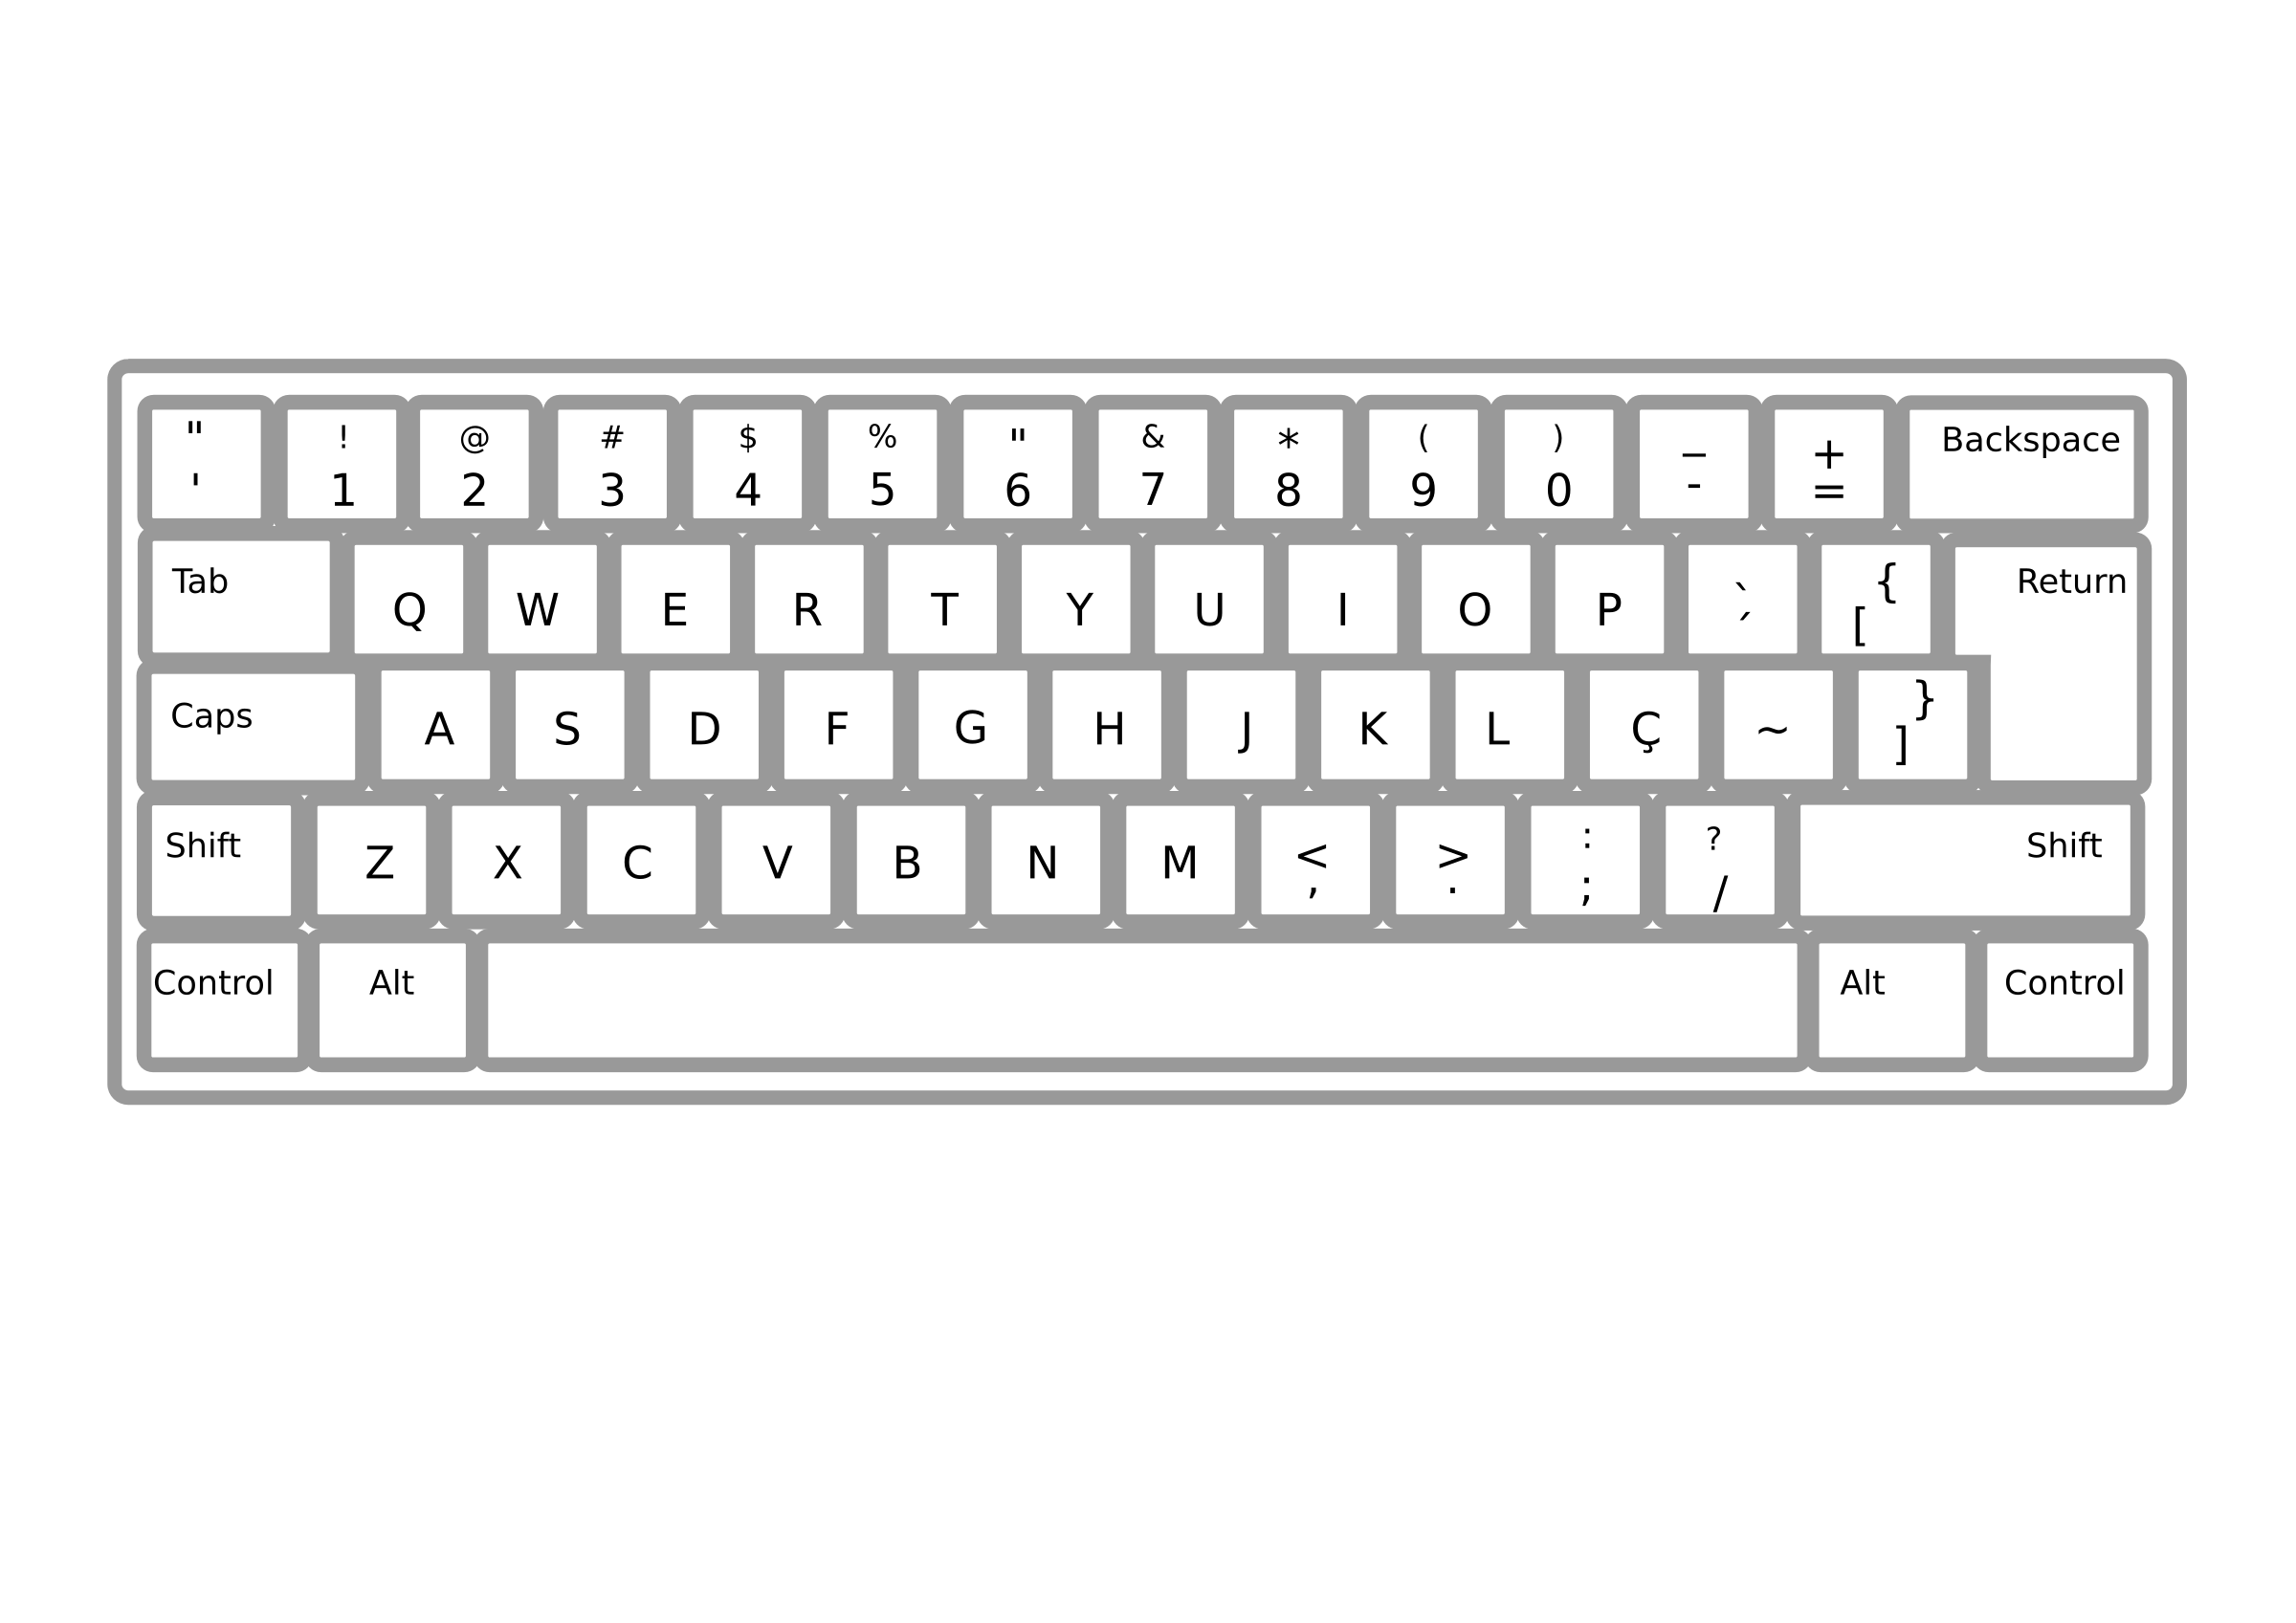 Clipart of computer keyboard jpg freeuse stock Clipart - Keyboard ABNT2 Pt Br jpg freeuse stock